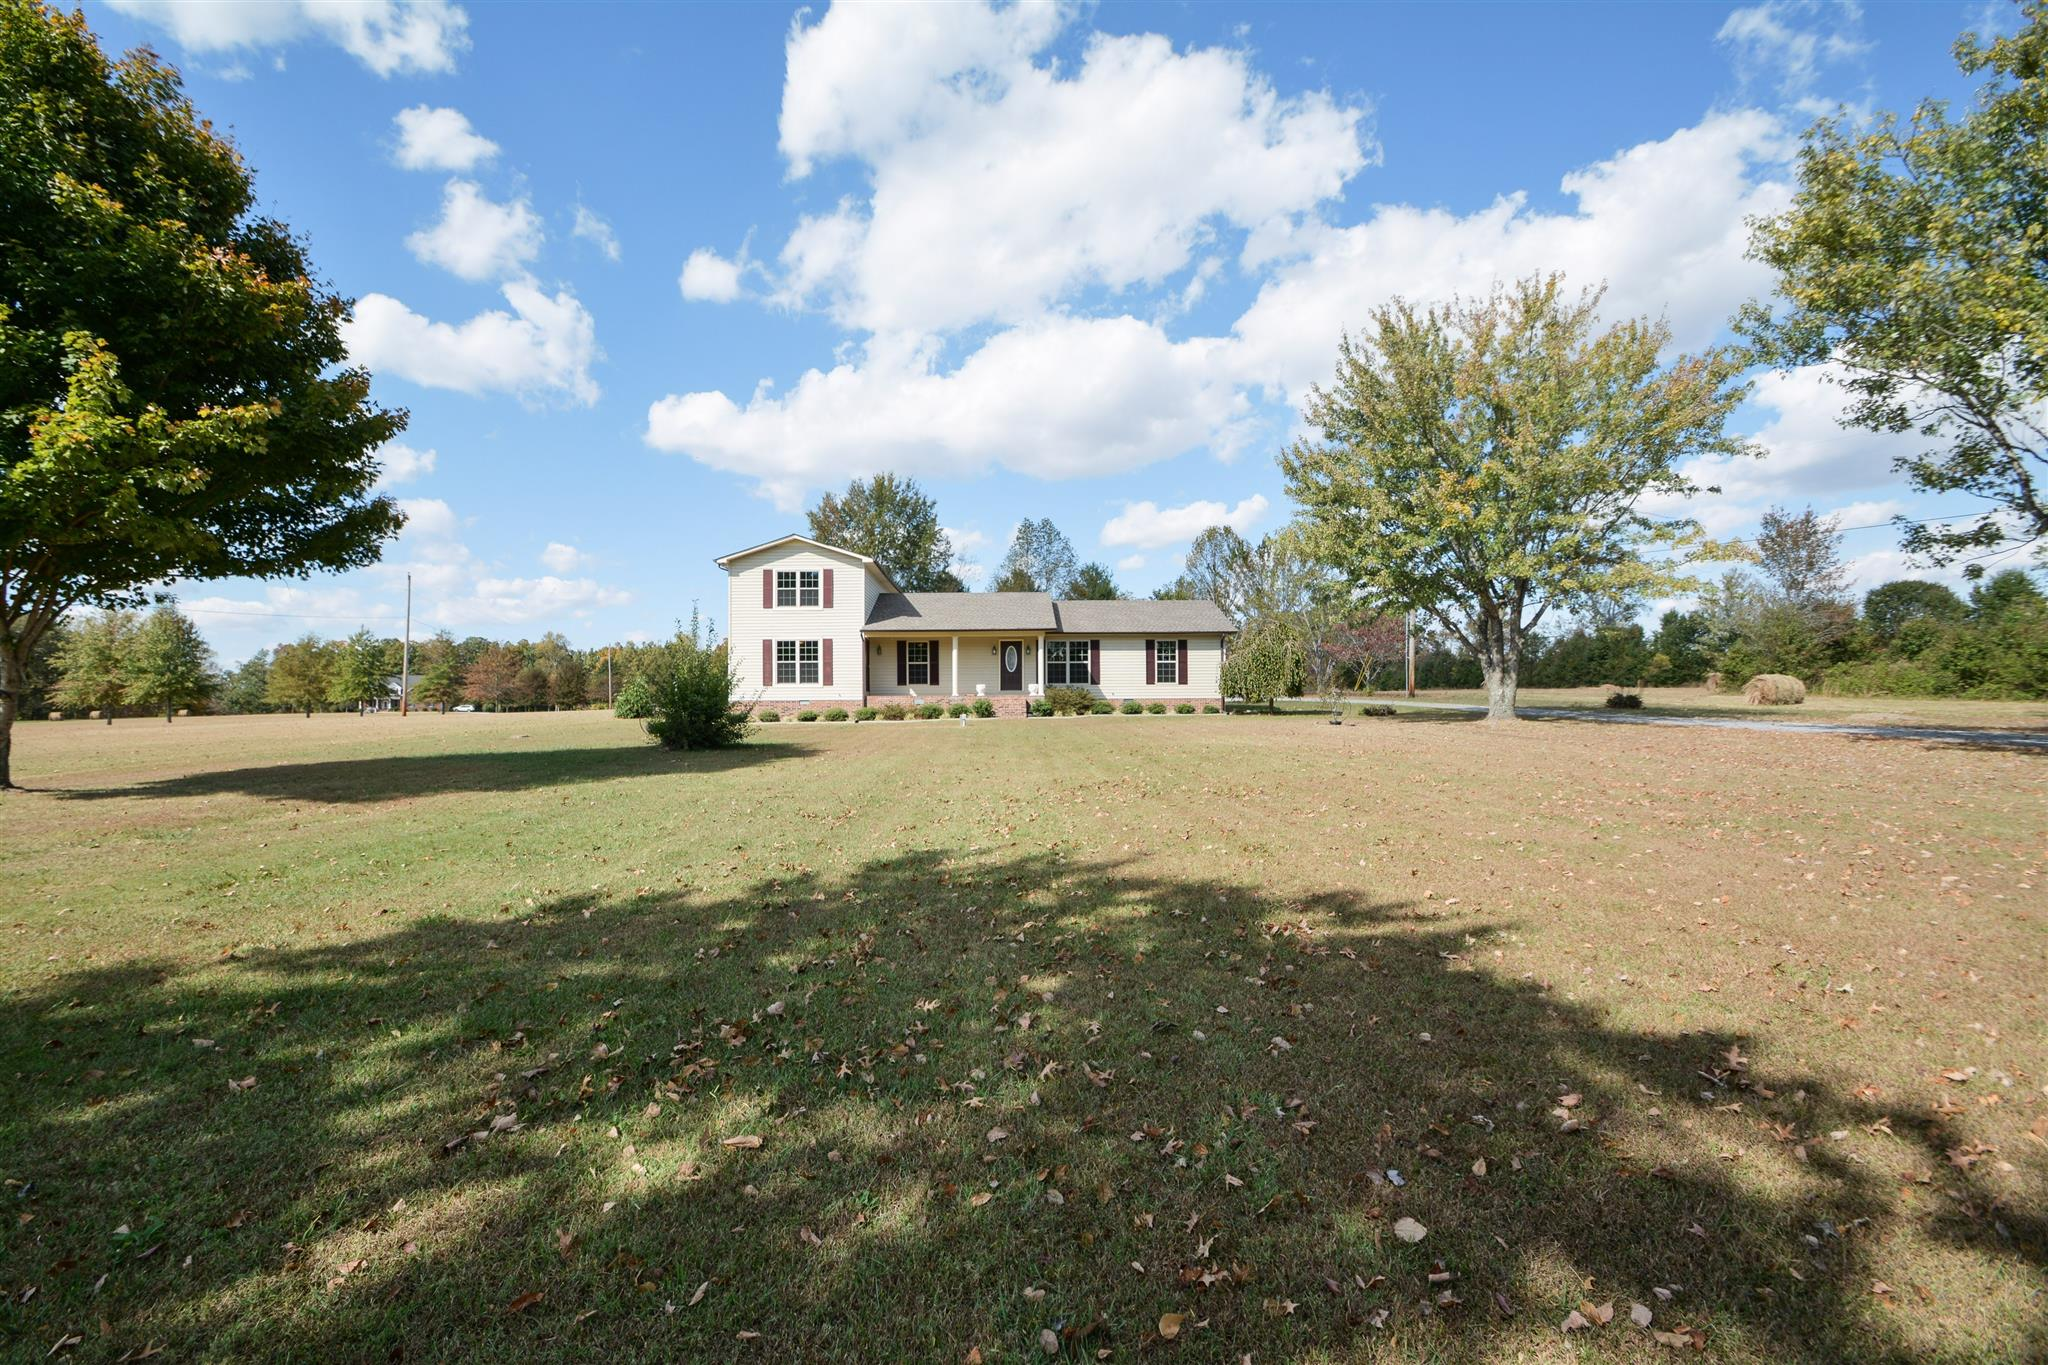 1128 Hollow Springs Rd, Woodbury, TN 37190